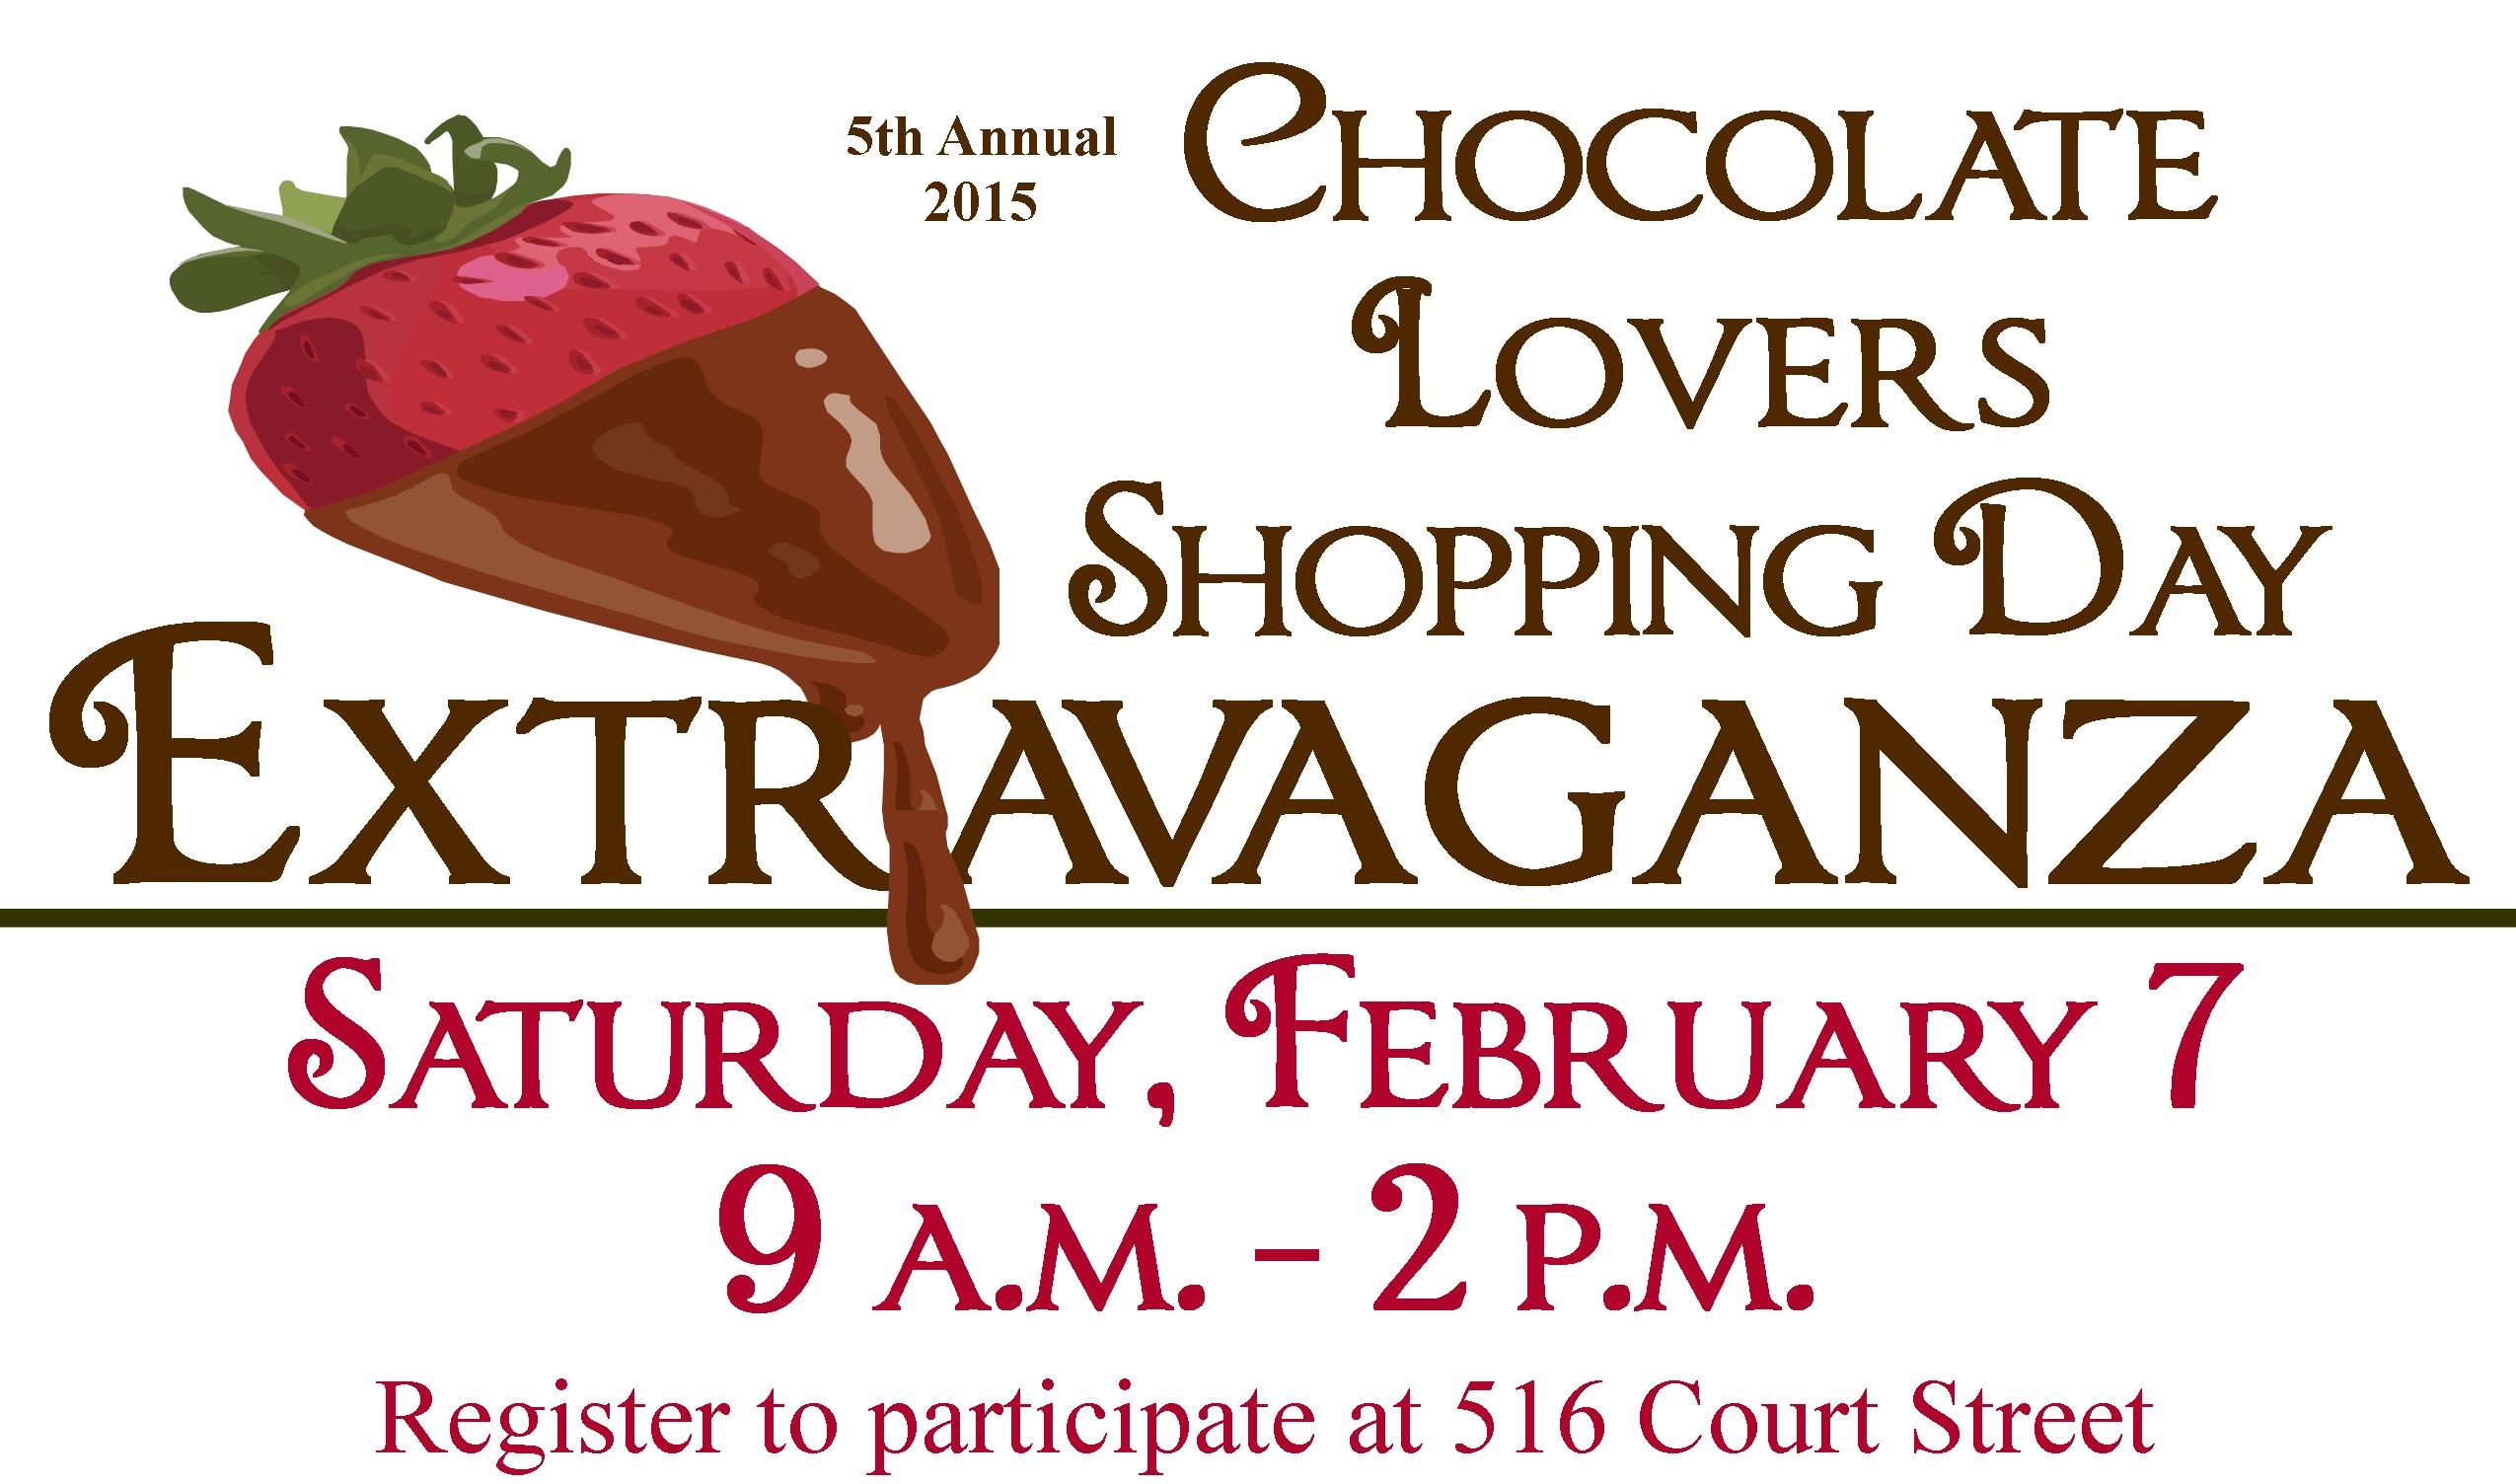 2015/5th Annual Chocolate Lover's Shopping Day Extravaganza - Downtown Beatrice, NE